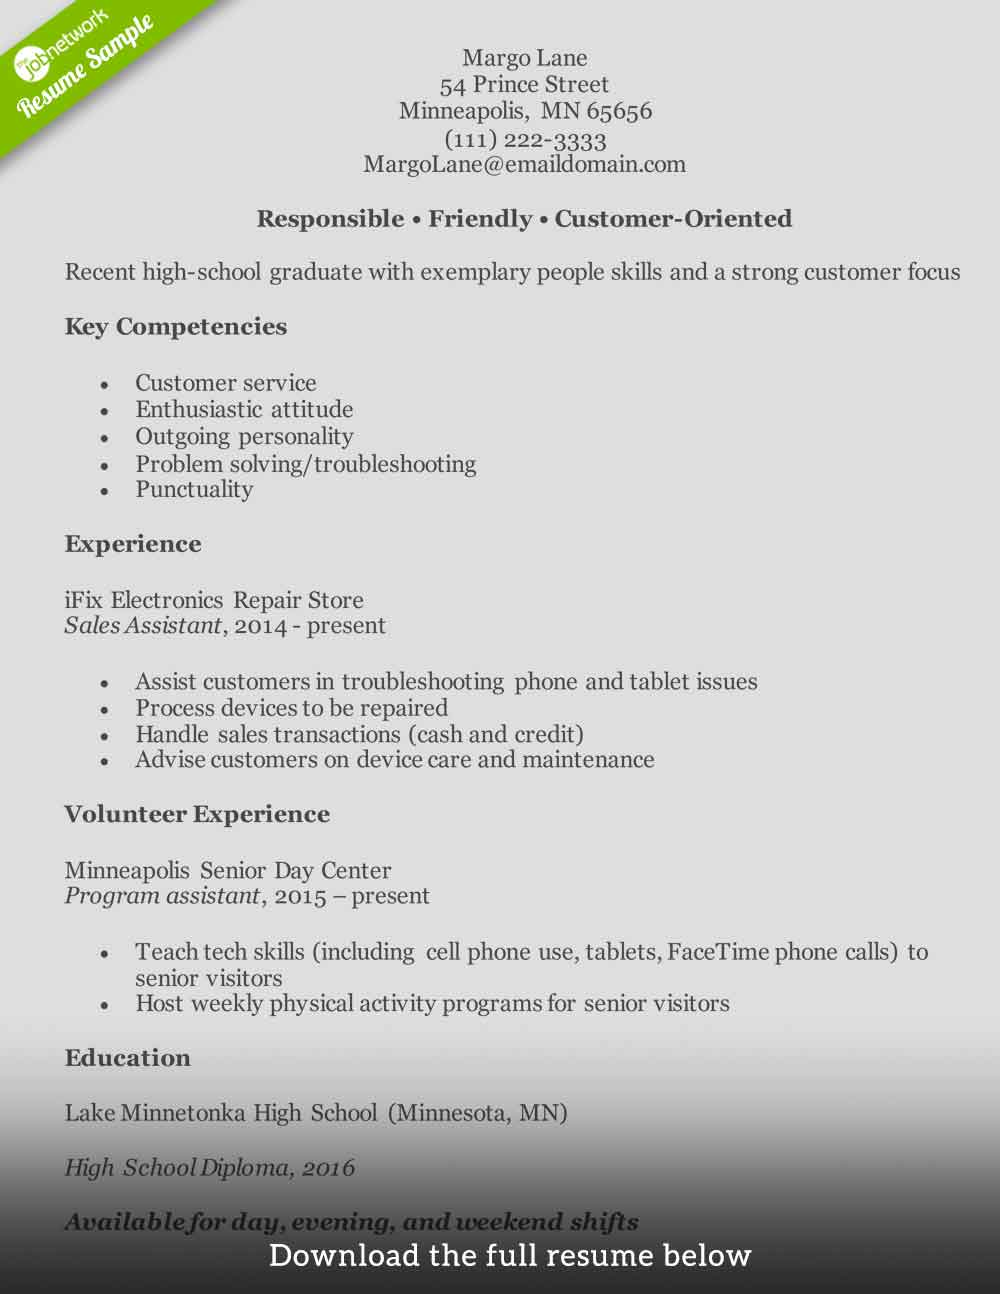 customer service resume to write the perfect one examples core competencies entry level1 Resume Customer Service Core Competencies Resume